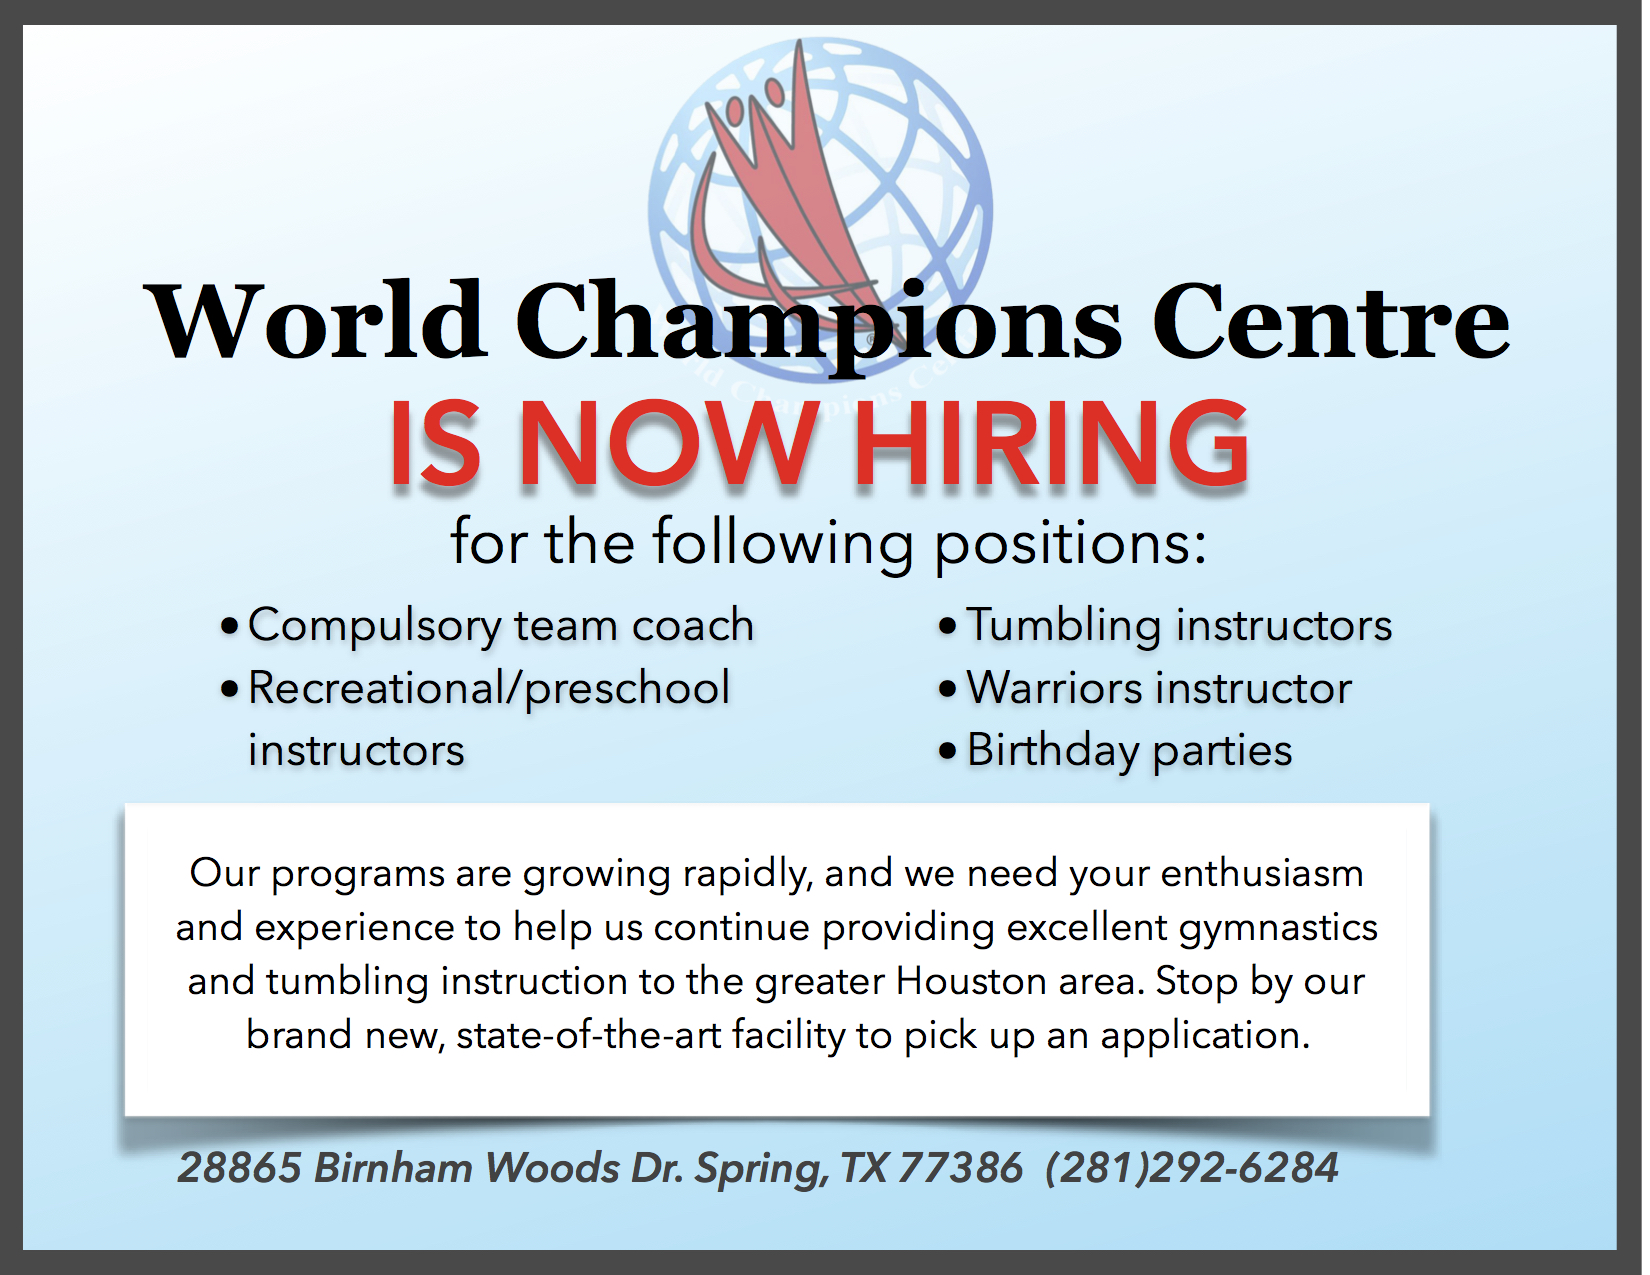 WCC is now Hiring